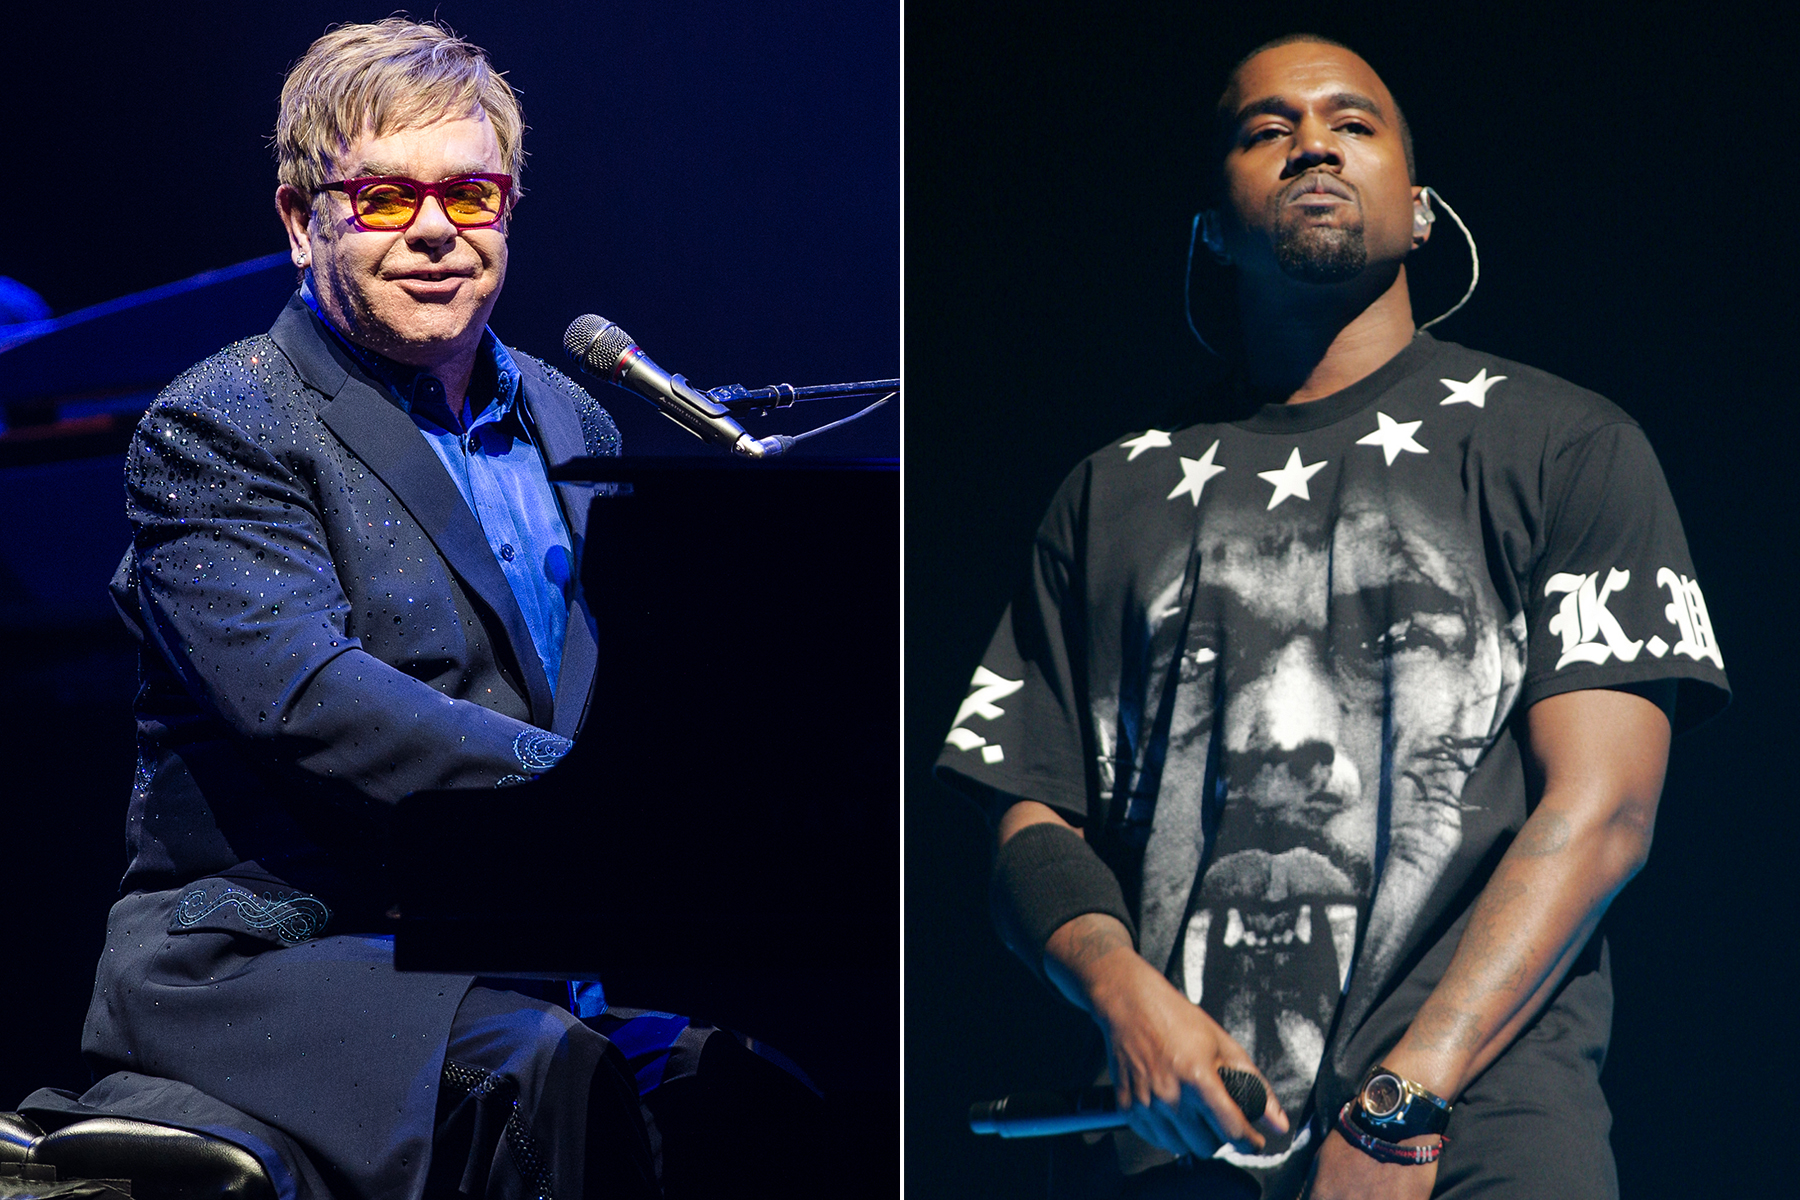 Bonnaroo 2014: Elton John, Kanye West, Jack White Set to Headline